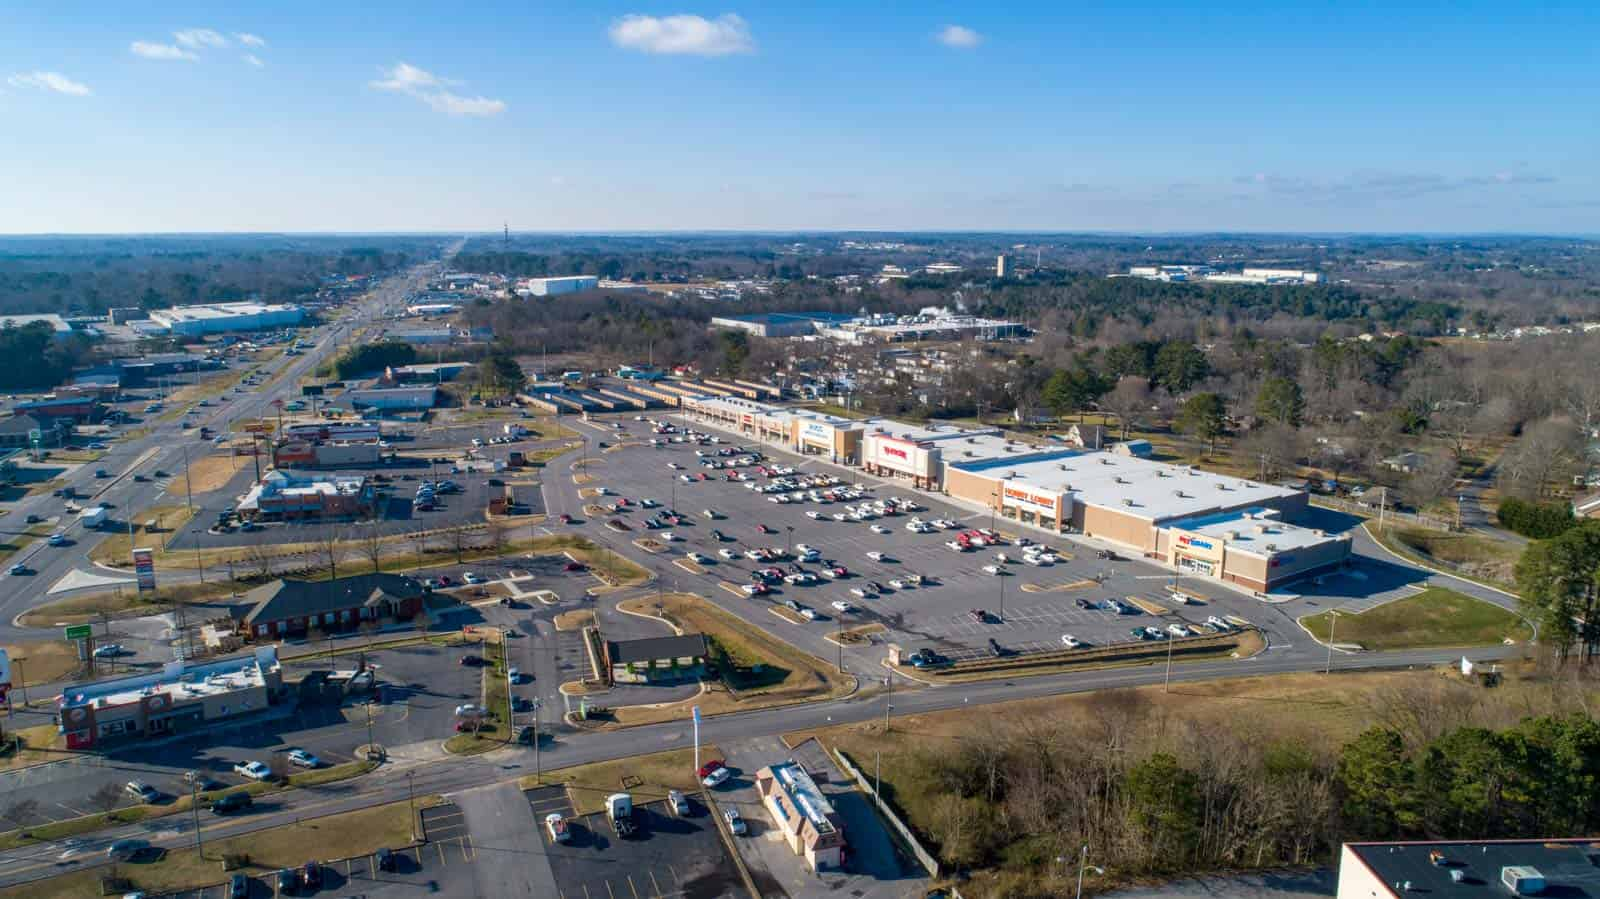 aerial drone photo of commercial strip mall in Albertville, AL